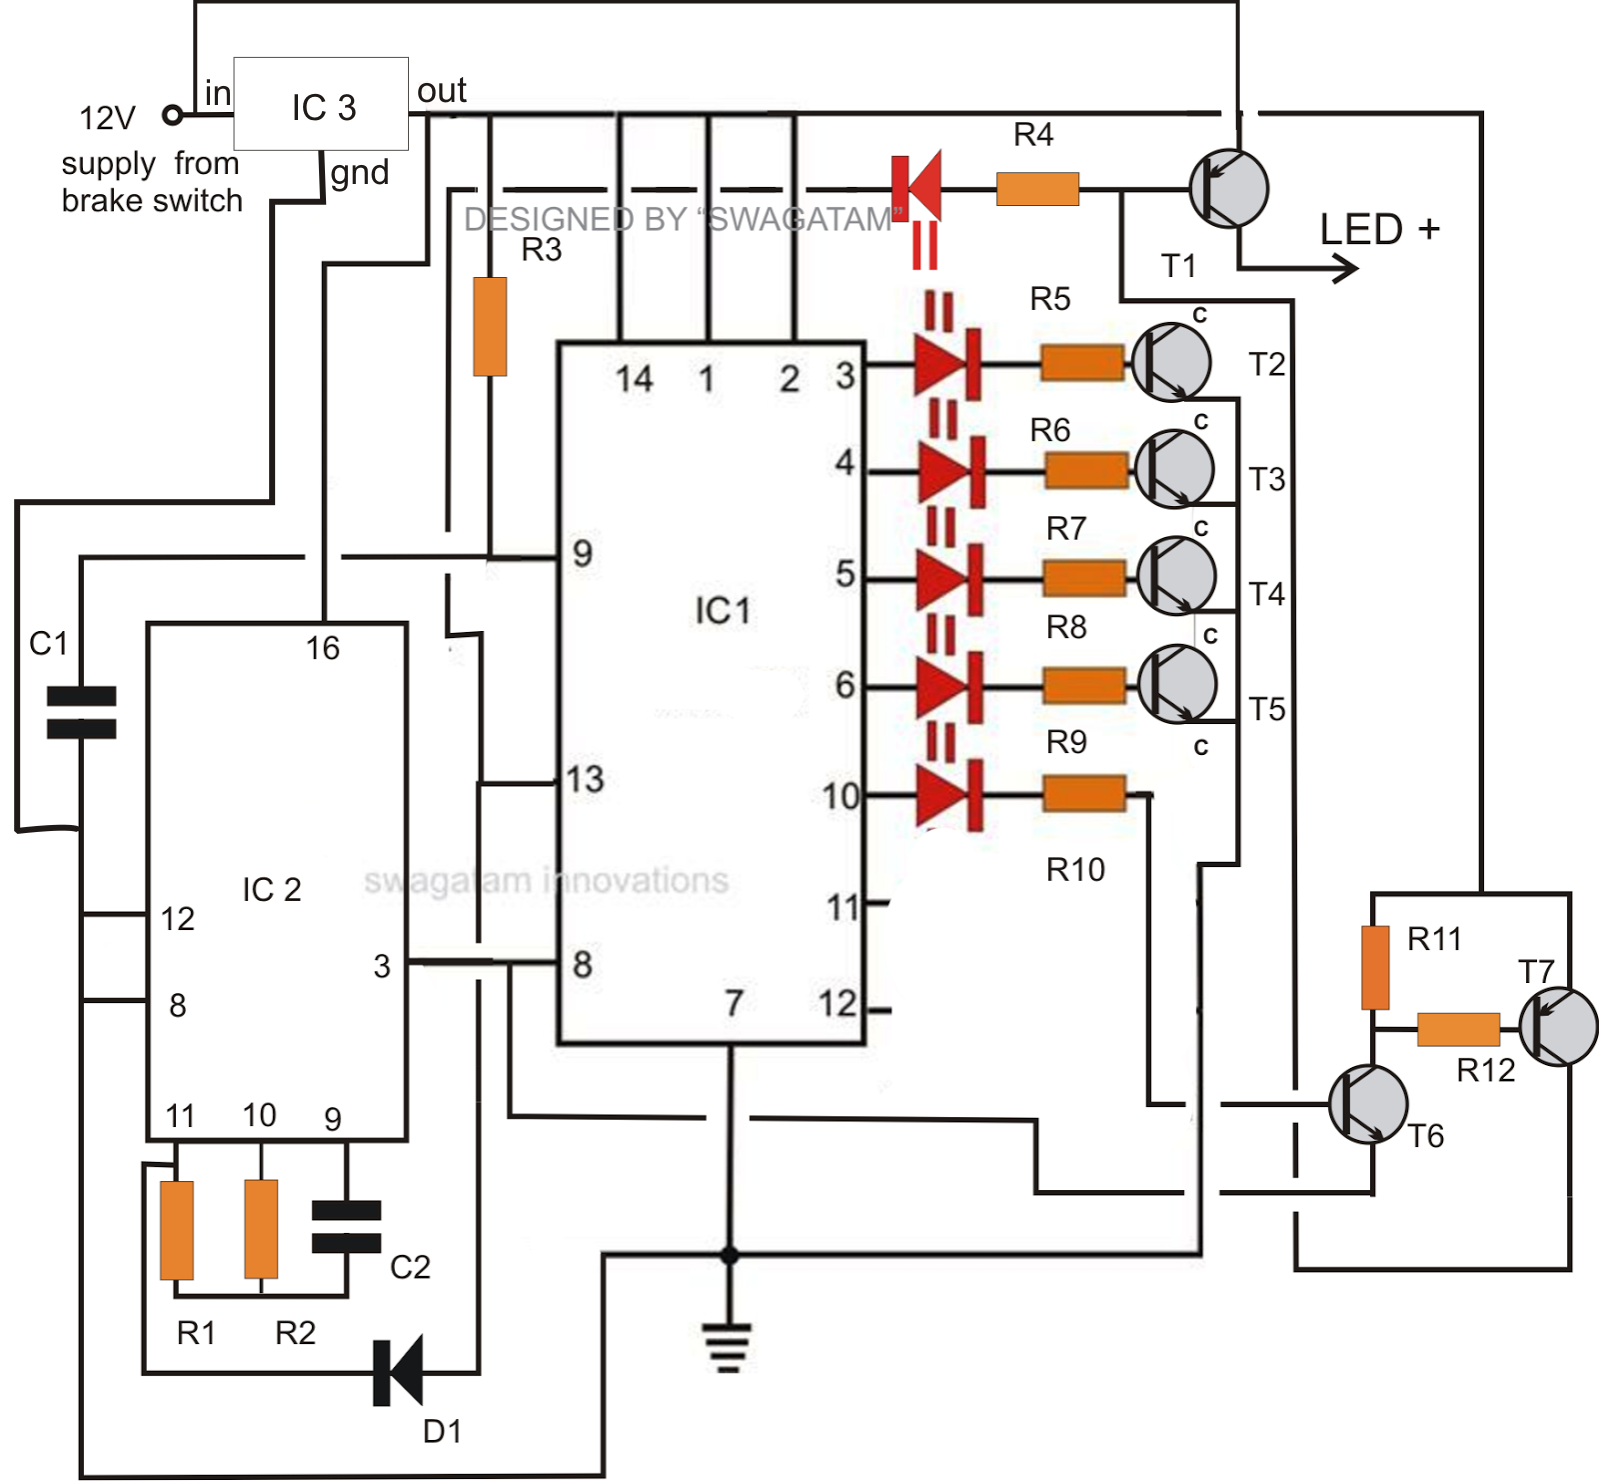 wiring diagram for car voltmeter wiring image subwoofer wiring diagram 5 ohm images on wiring diagram for car voltmeter